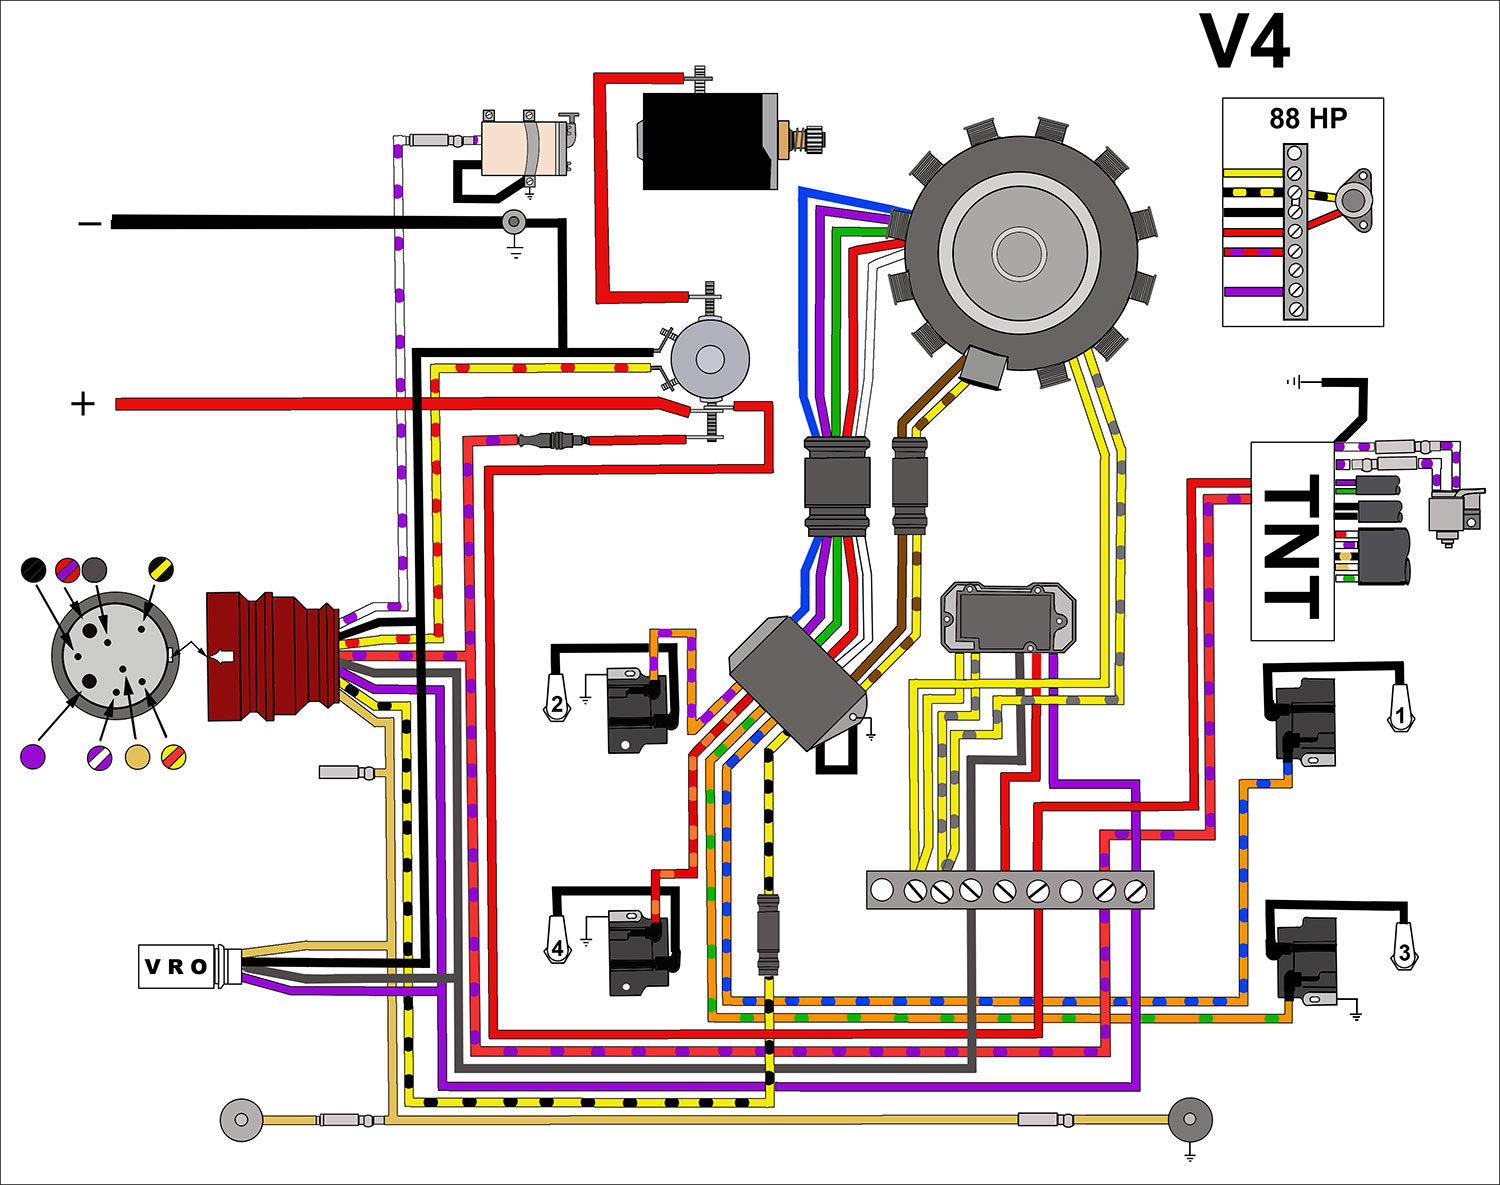 70 hp johnson ignition switch wiring diagram 70 hp force outboard motor wiring diagram engine evinrude johnson outboard wiring diagrams -- mastertech ...